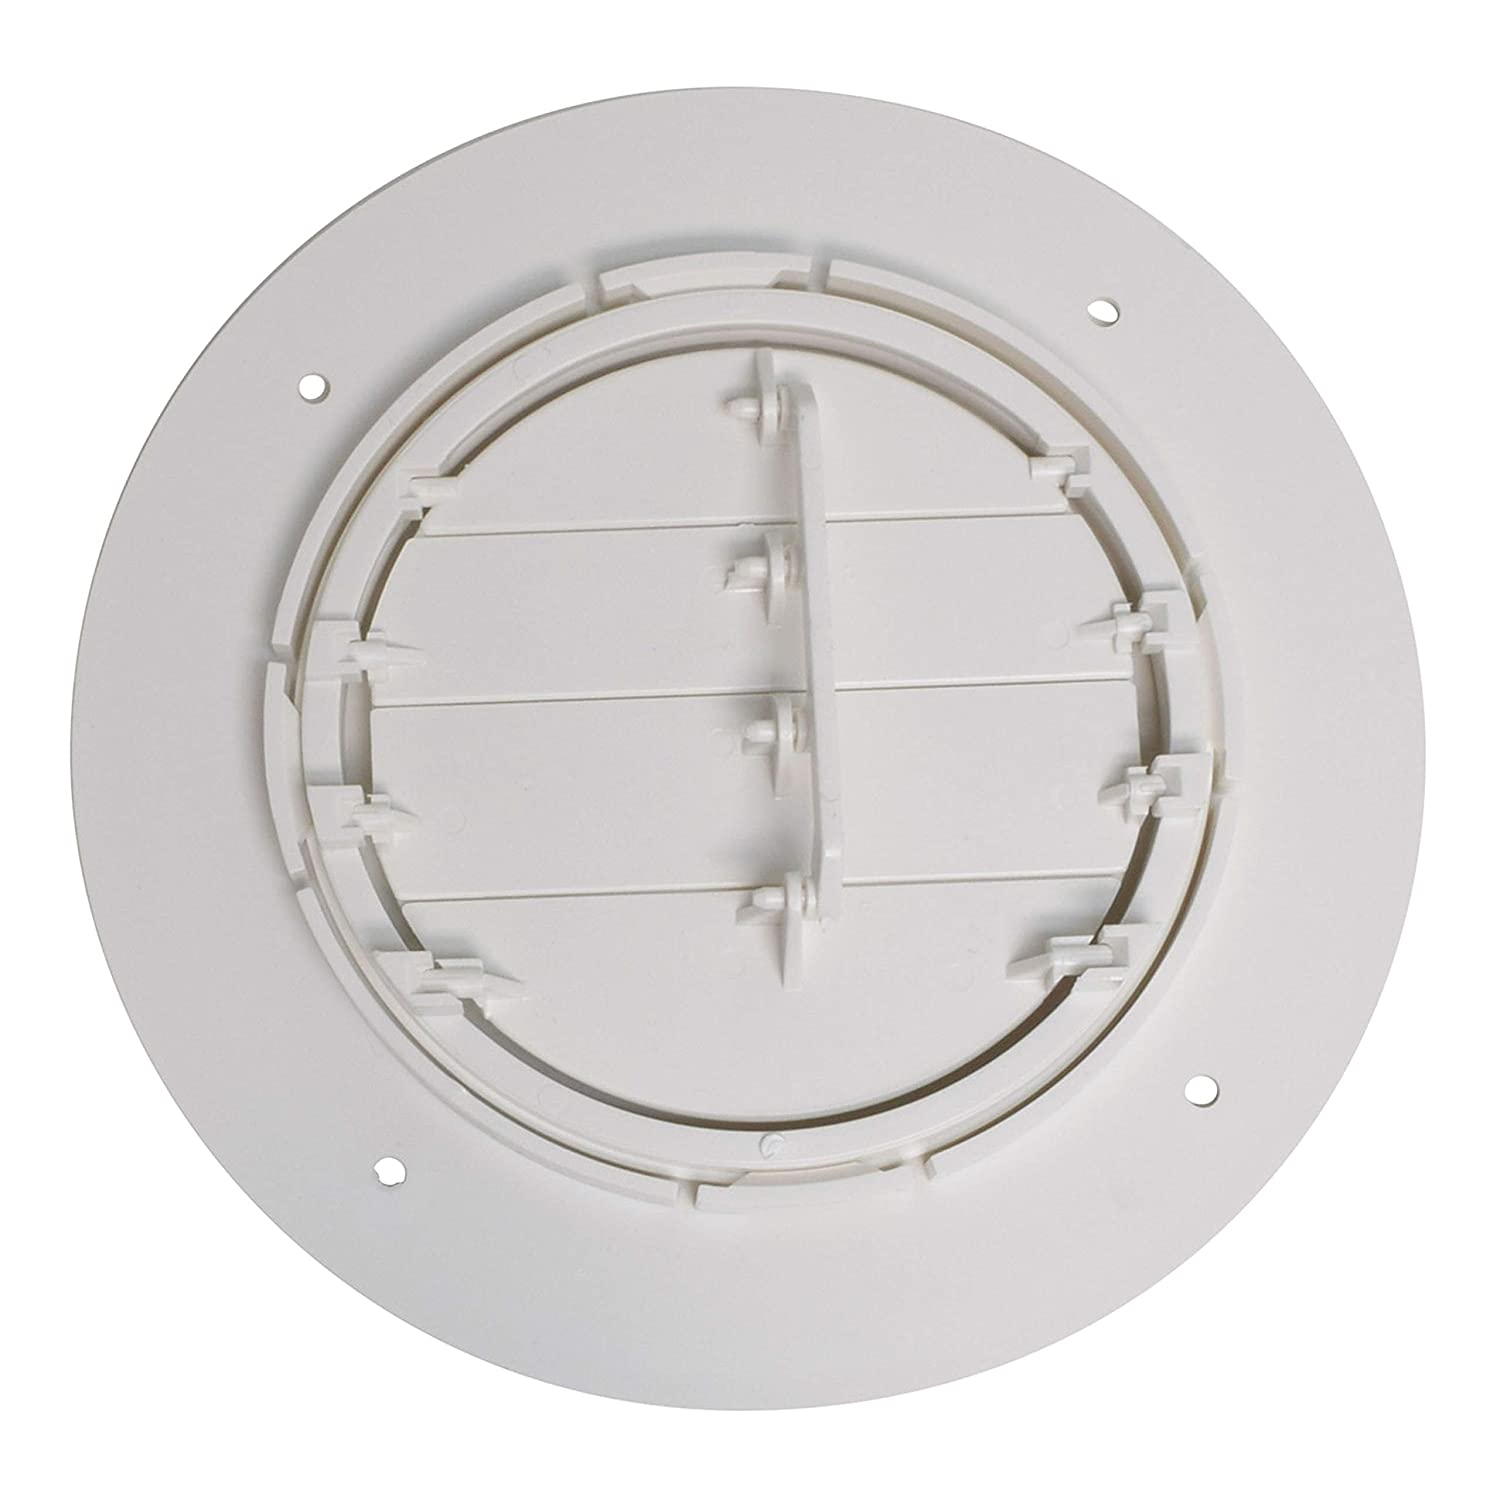 4 ID, 7 OD Valterra A10-3357VP White Rotating Heat and A//C Register with Damper